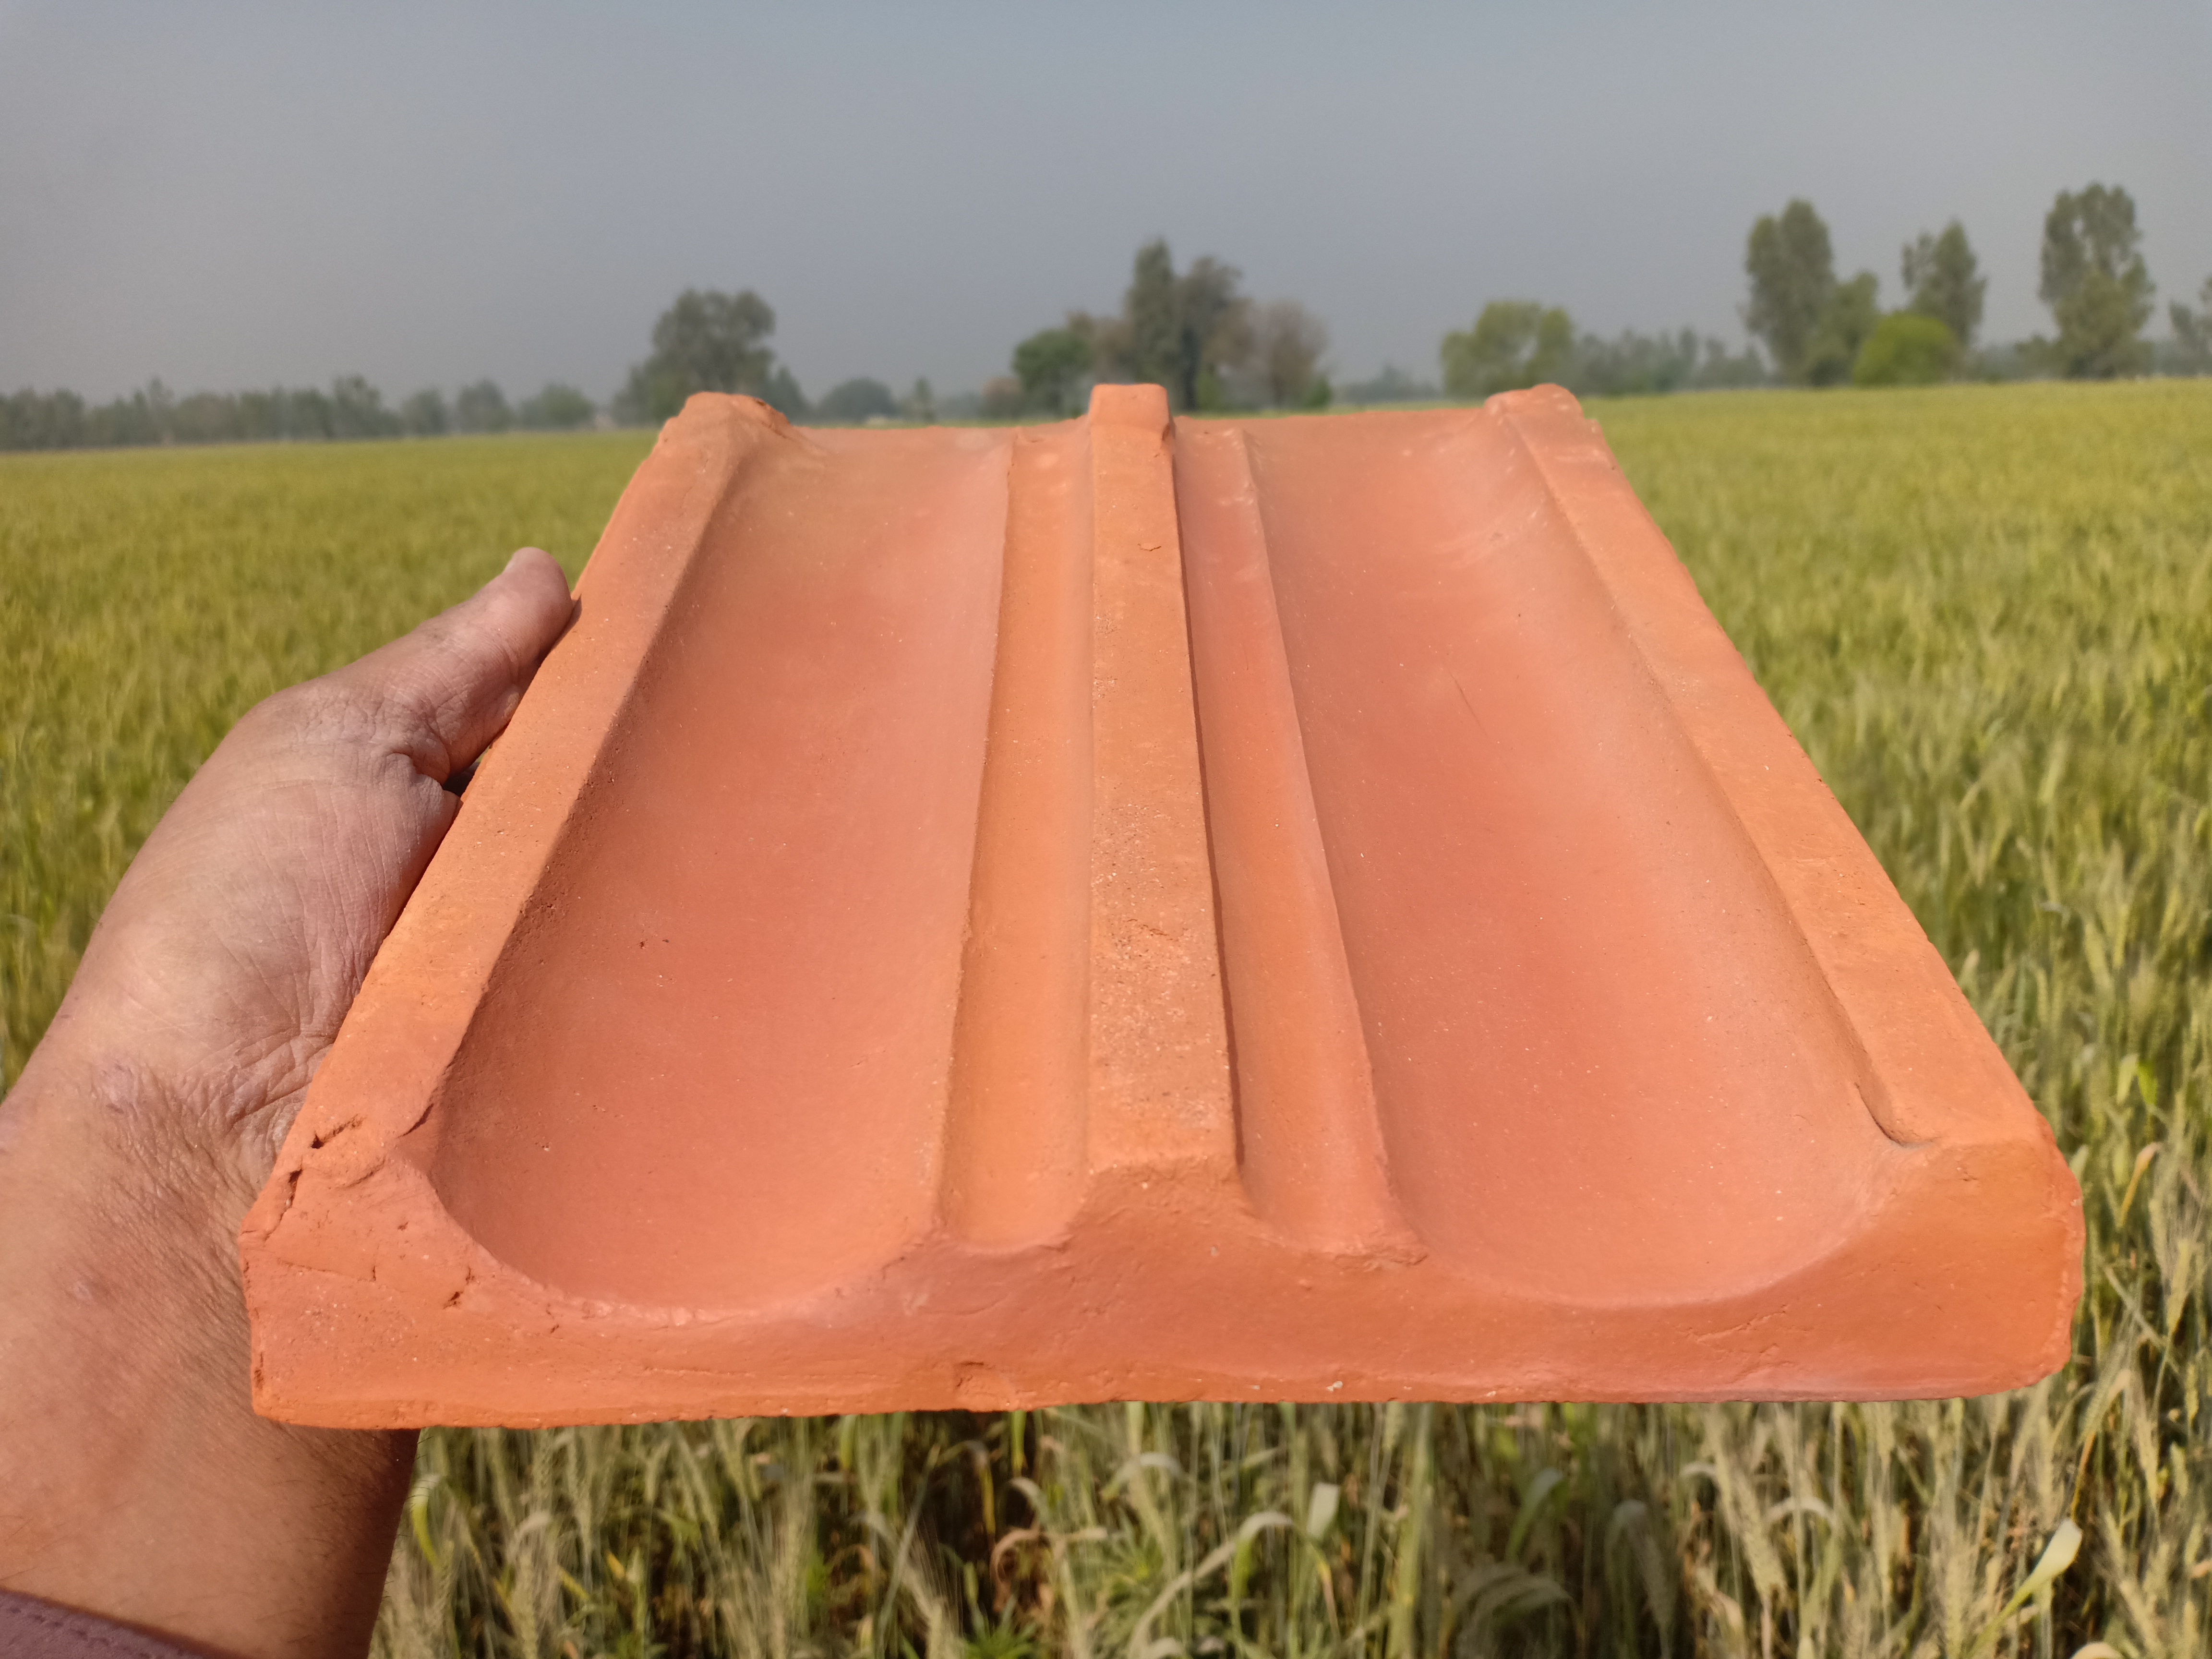 12 Pak Clay Tiles Lahore Disco Roof Tiles Clay Tiles Pakistan Ceramic Tiles Patterns Images.